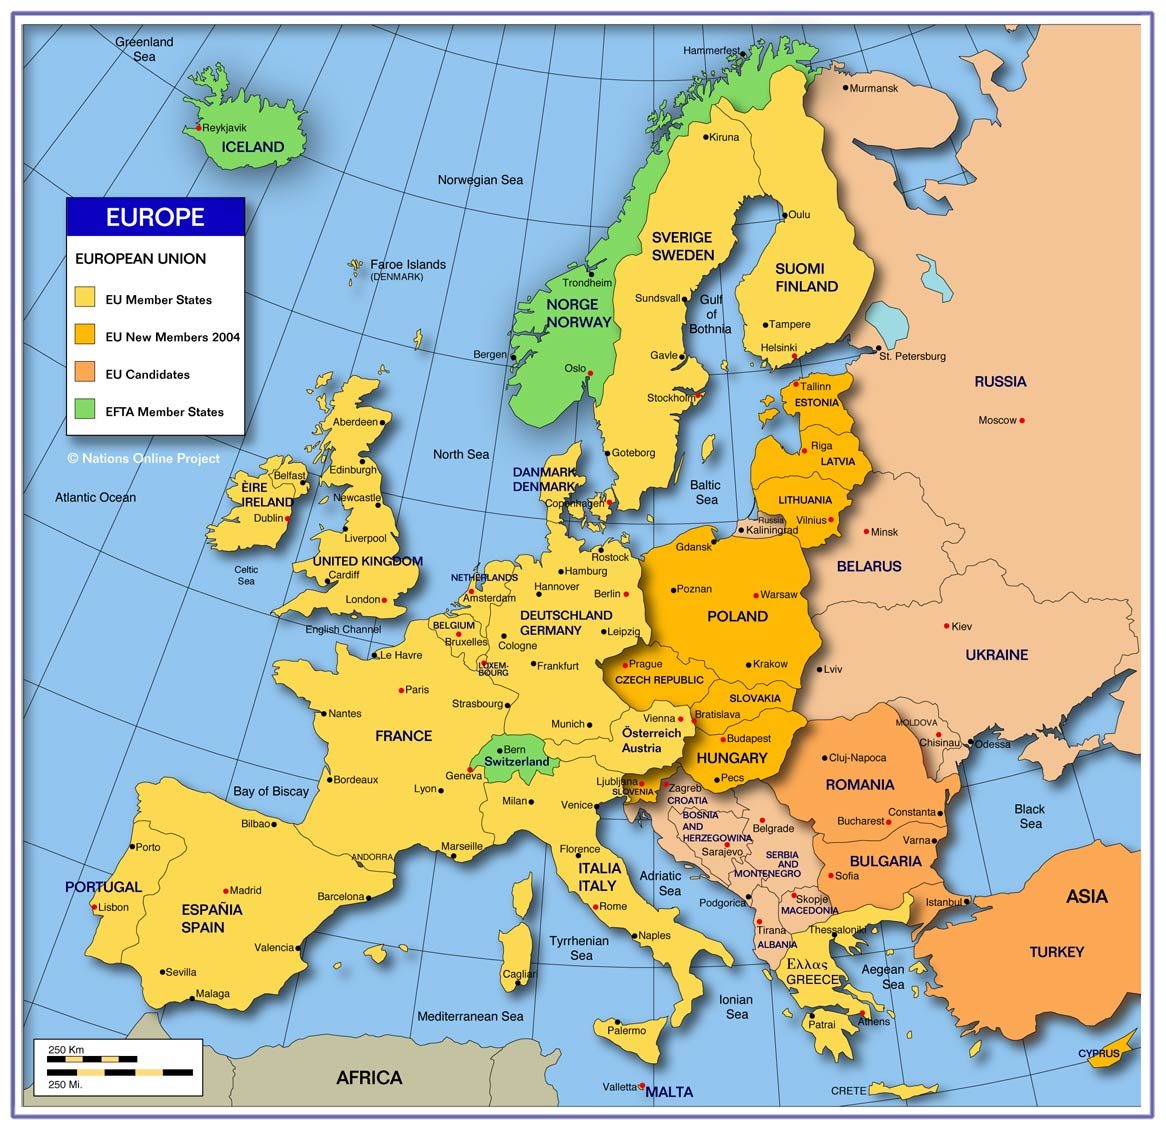 The European Union: links of interests, quizzes and ...